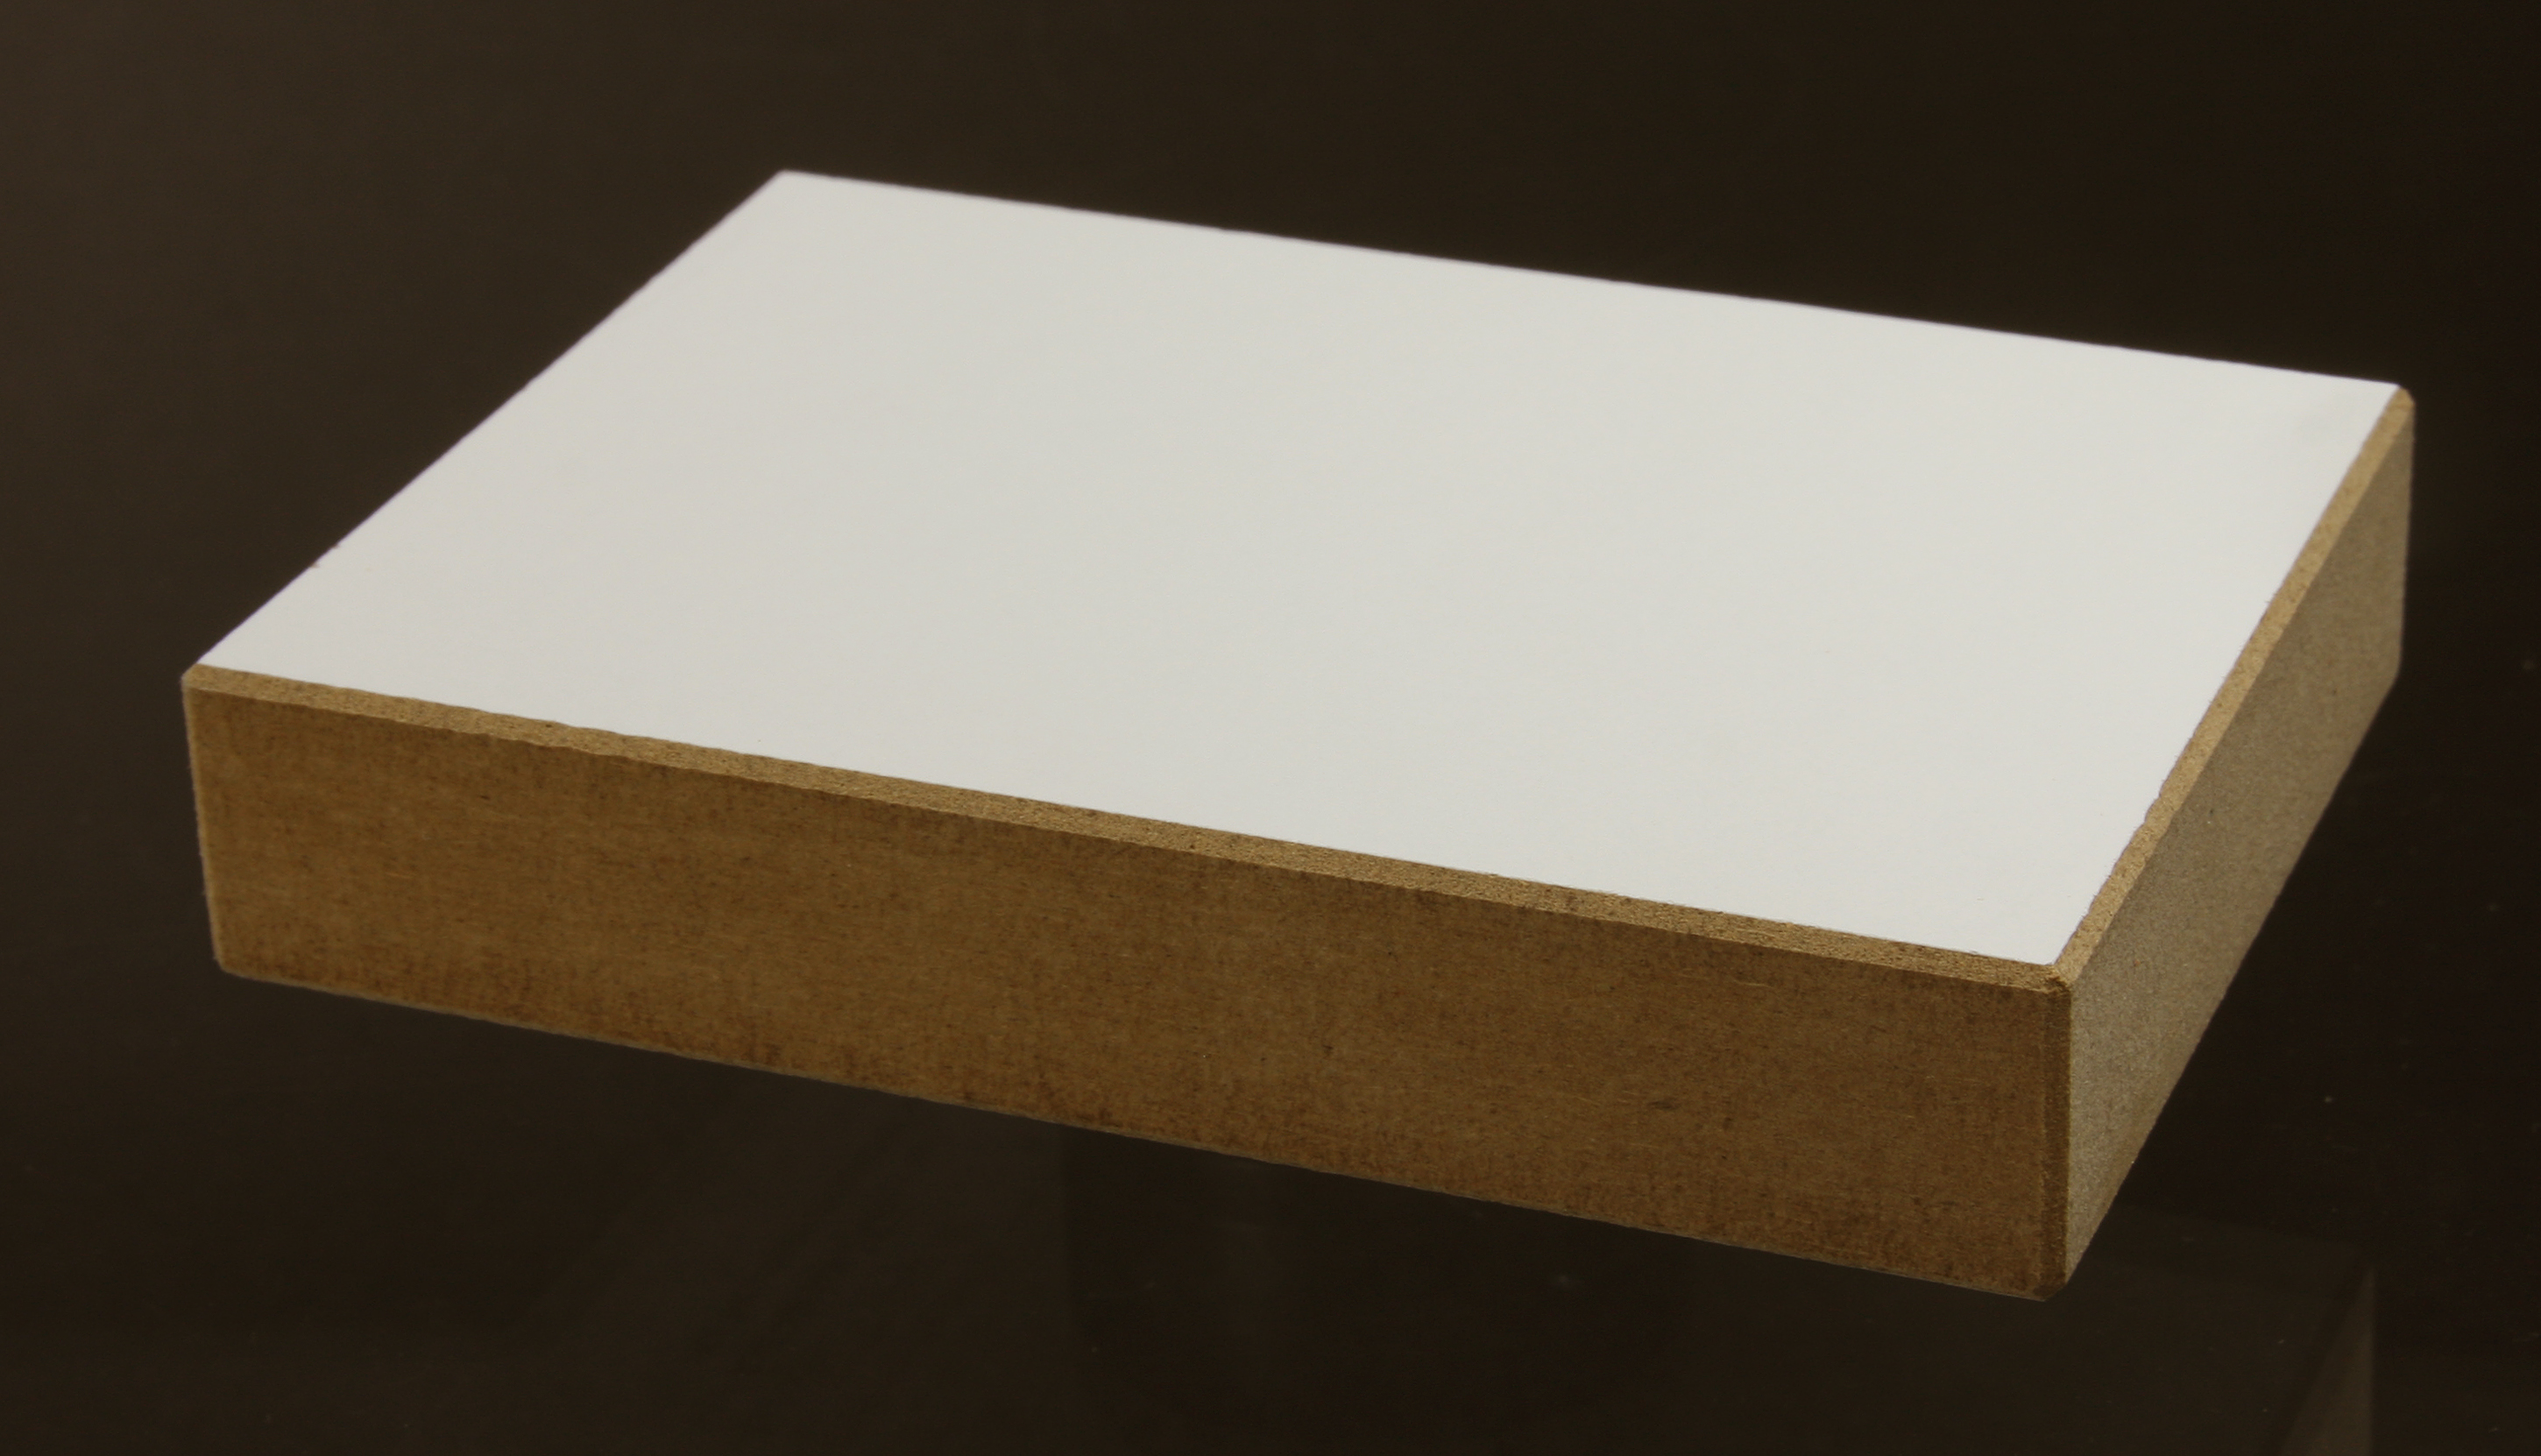 Mdf 22mm Mdf Sheet Materials Brookridge Timber Somerset Importers